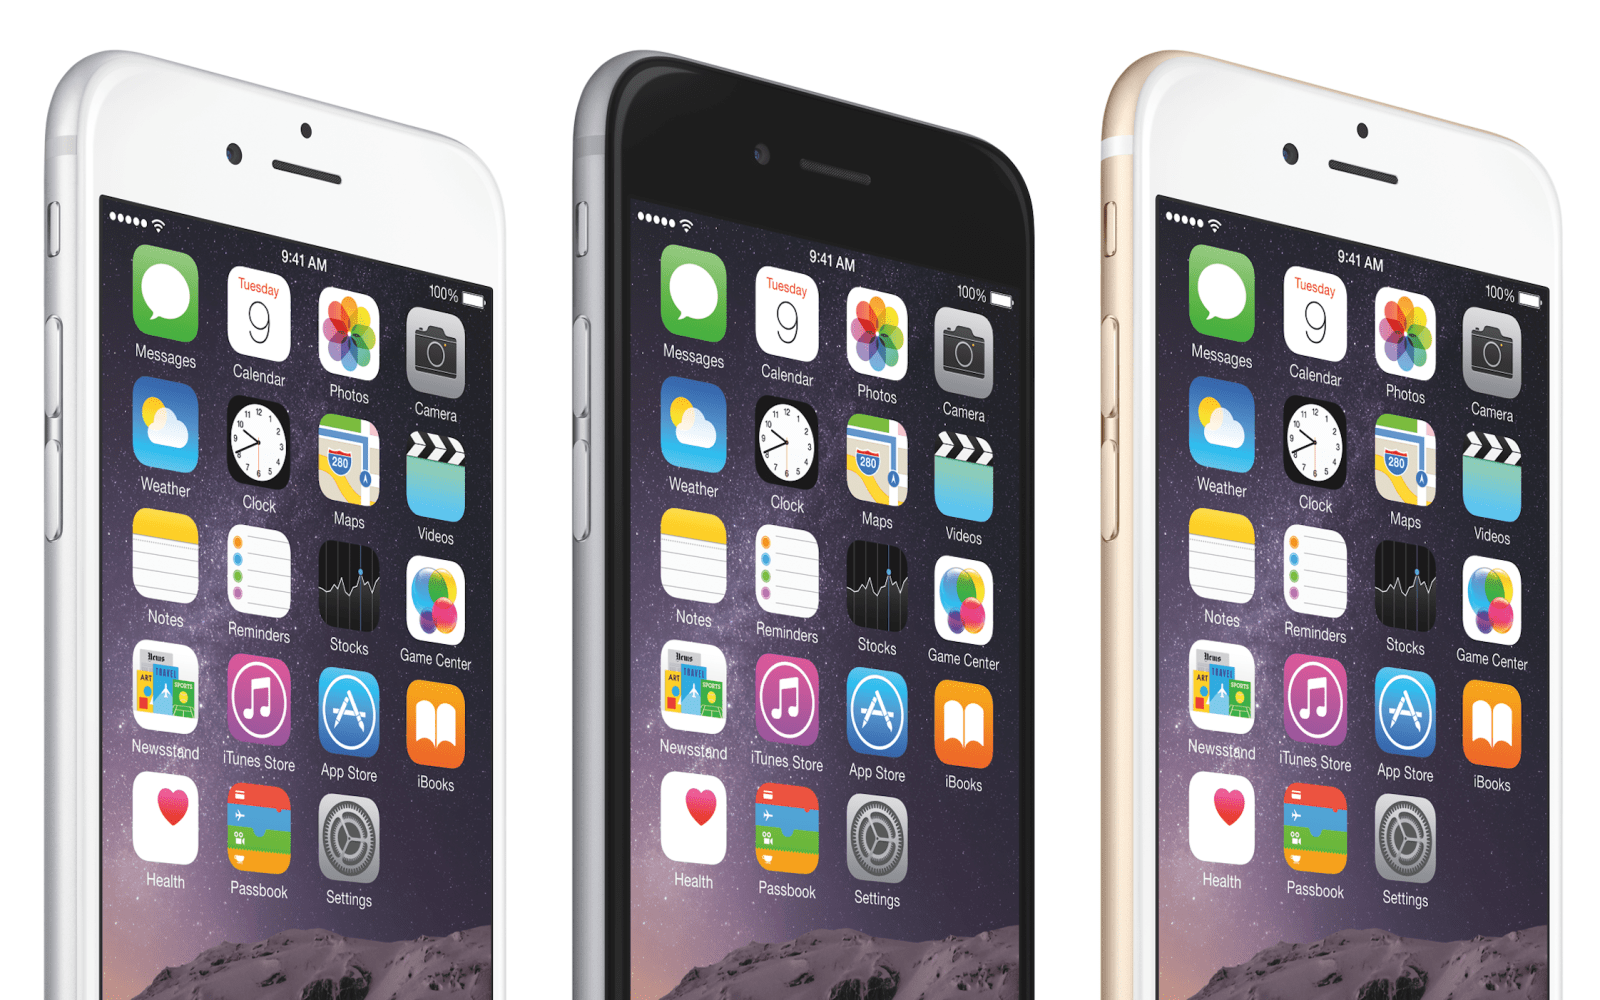 iphone 6 vs iphone 6 plus which one should you buy 9to5mac